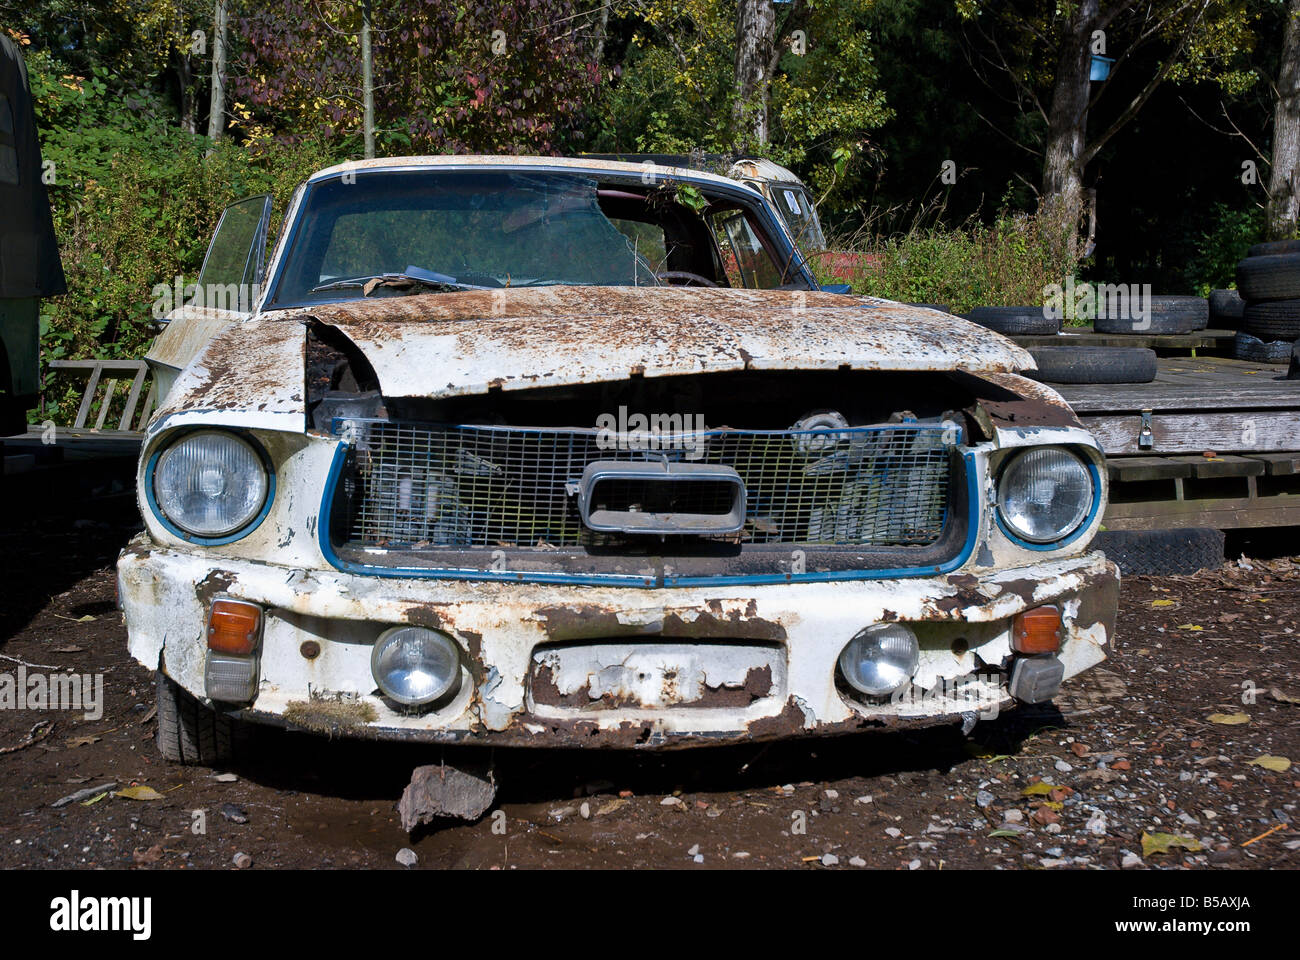 An old ford mustang sits in the junkyard